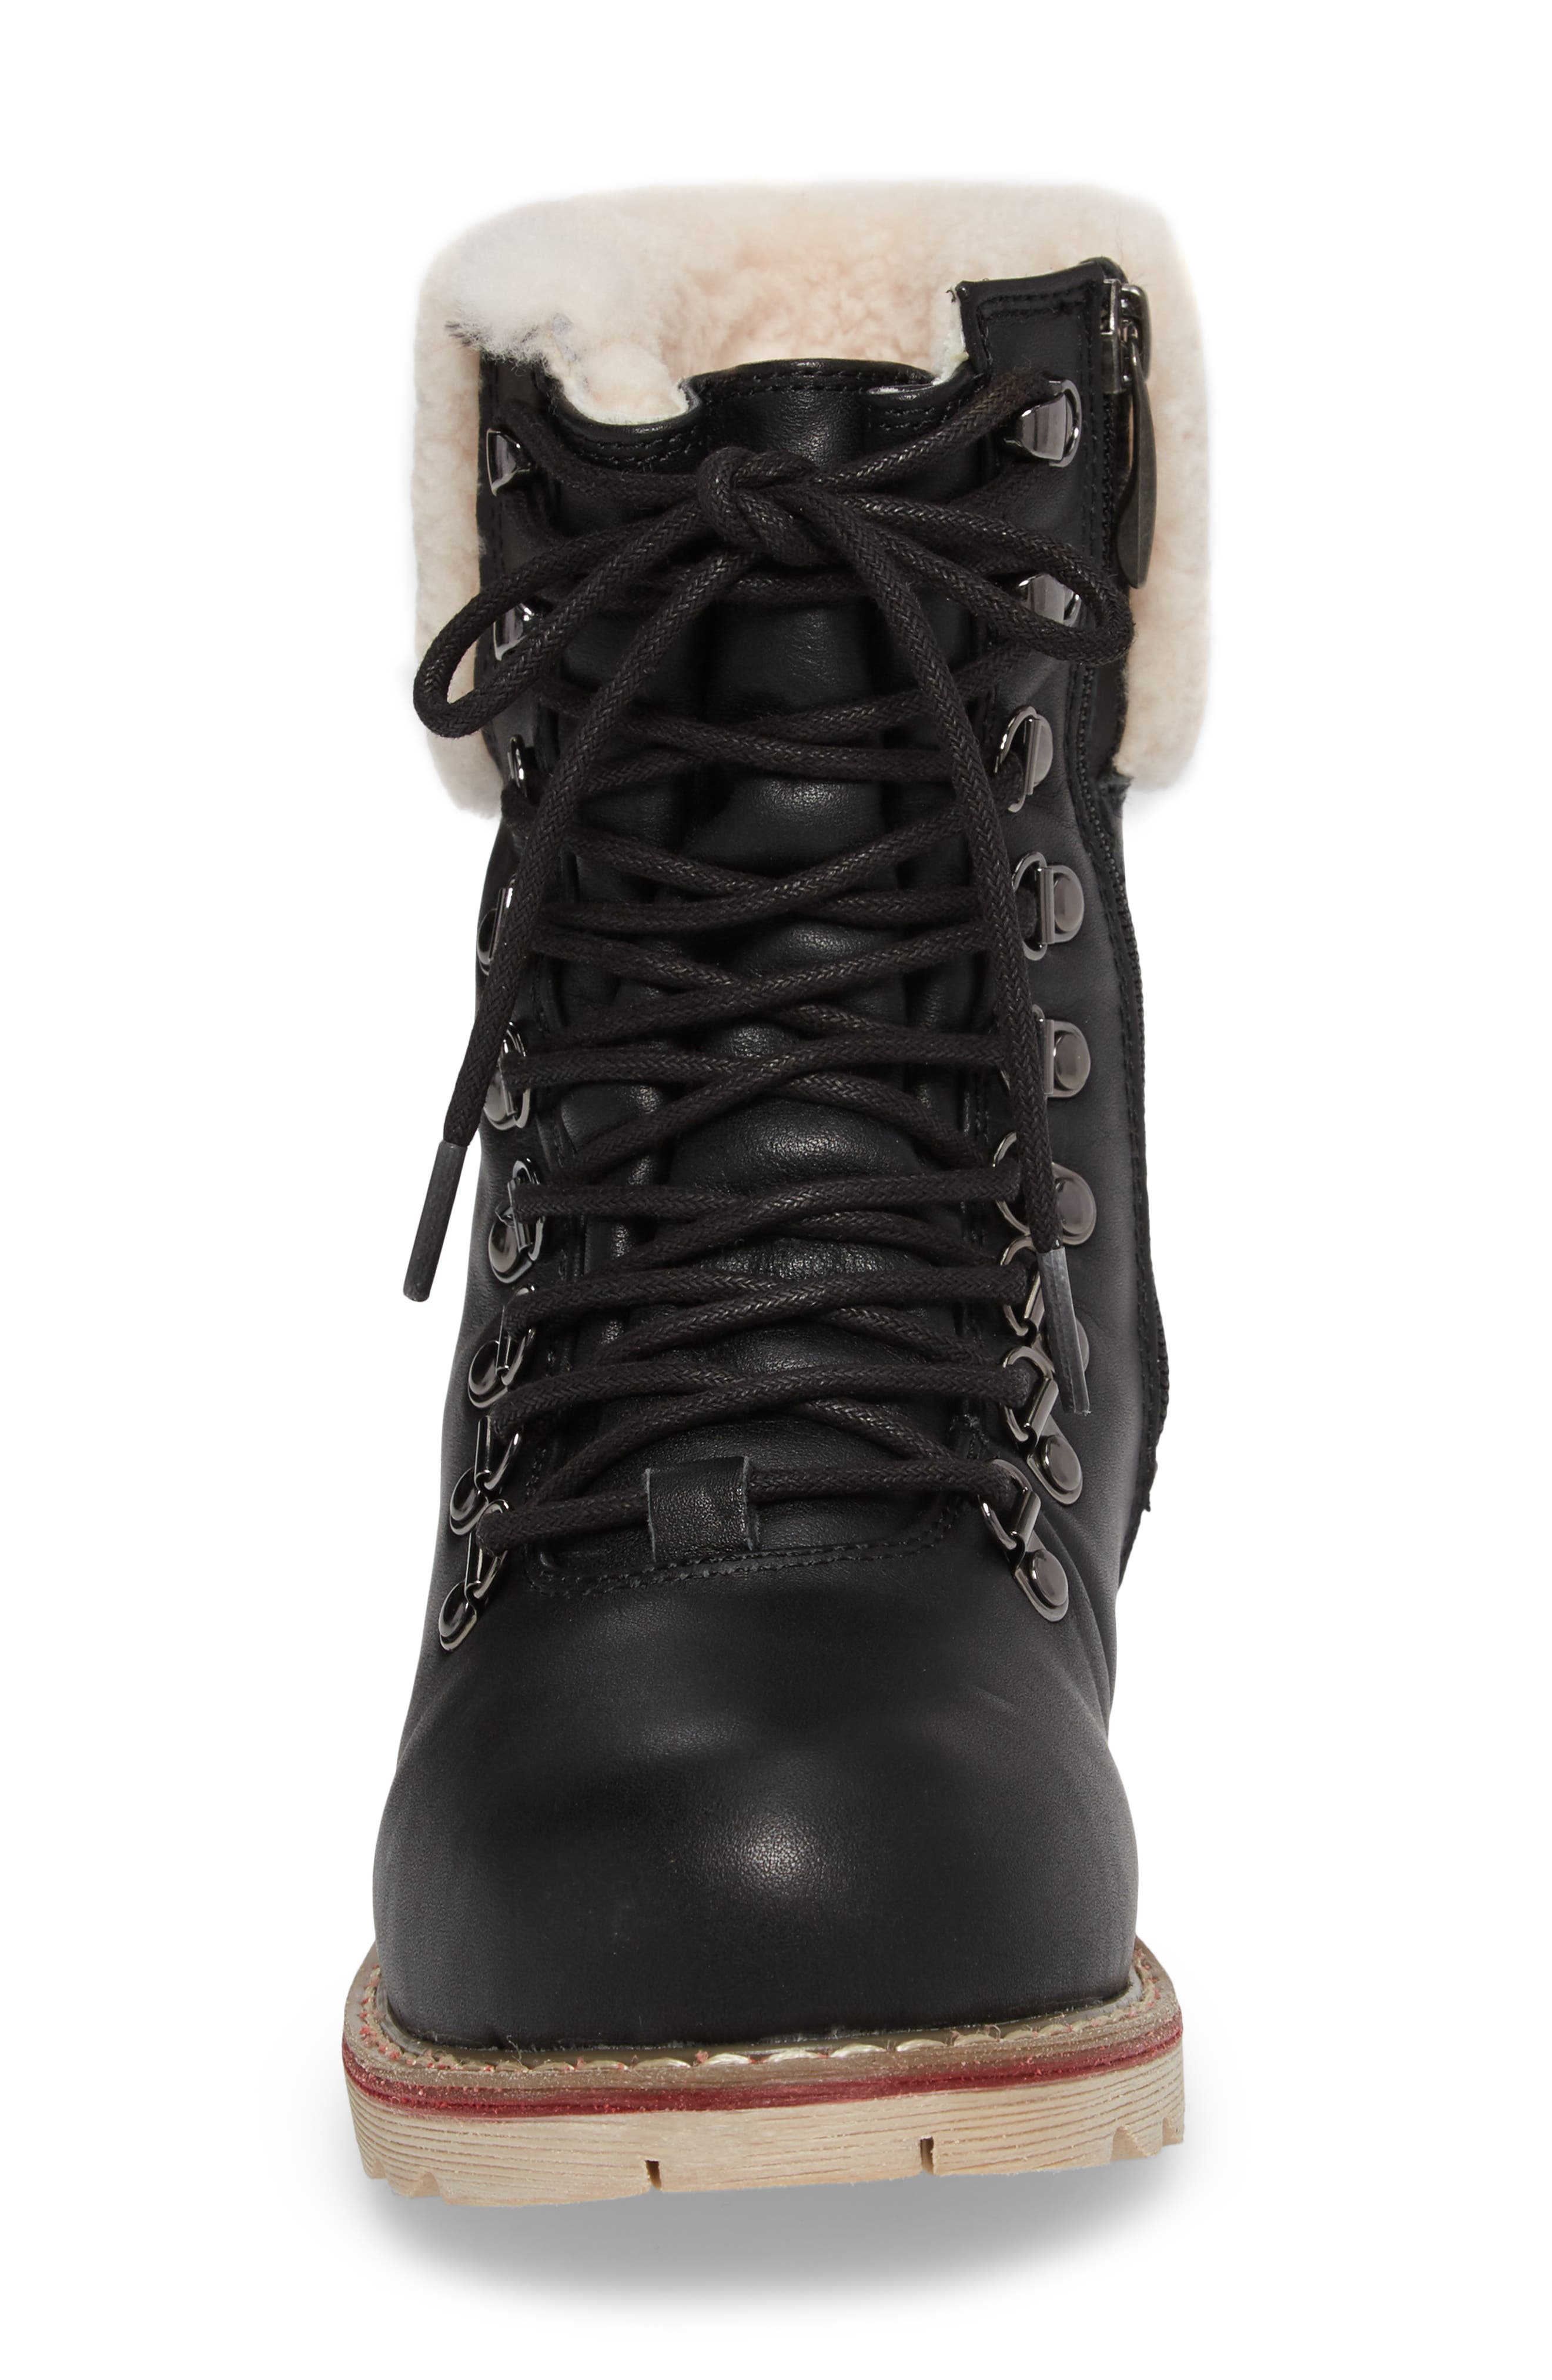 Lethbridge Waterproof Snow Boot with Genuine Shearling Cuff,                             Alternate thumbnail 4, color,                             BLACK LEATHER